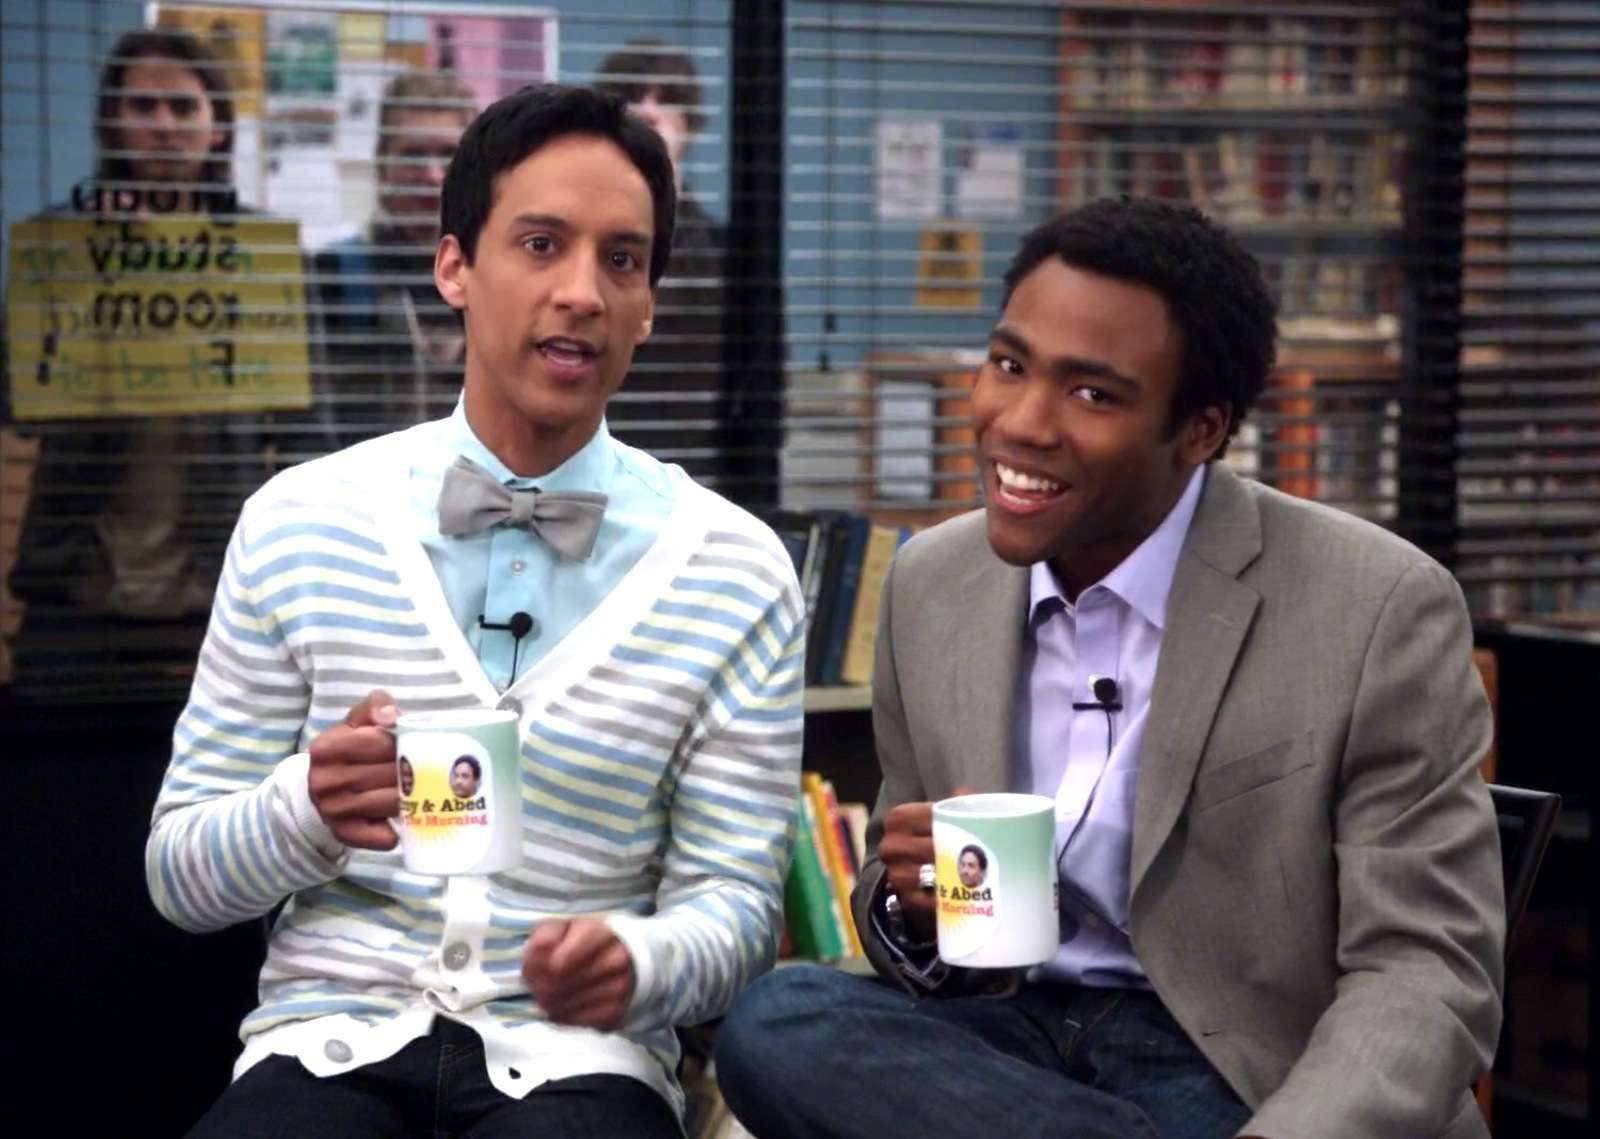 troy-and-abed-community-danny-pudi-donald-glover